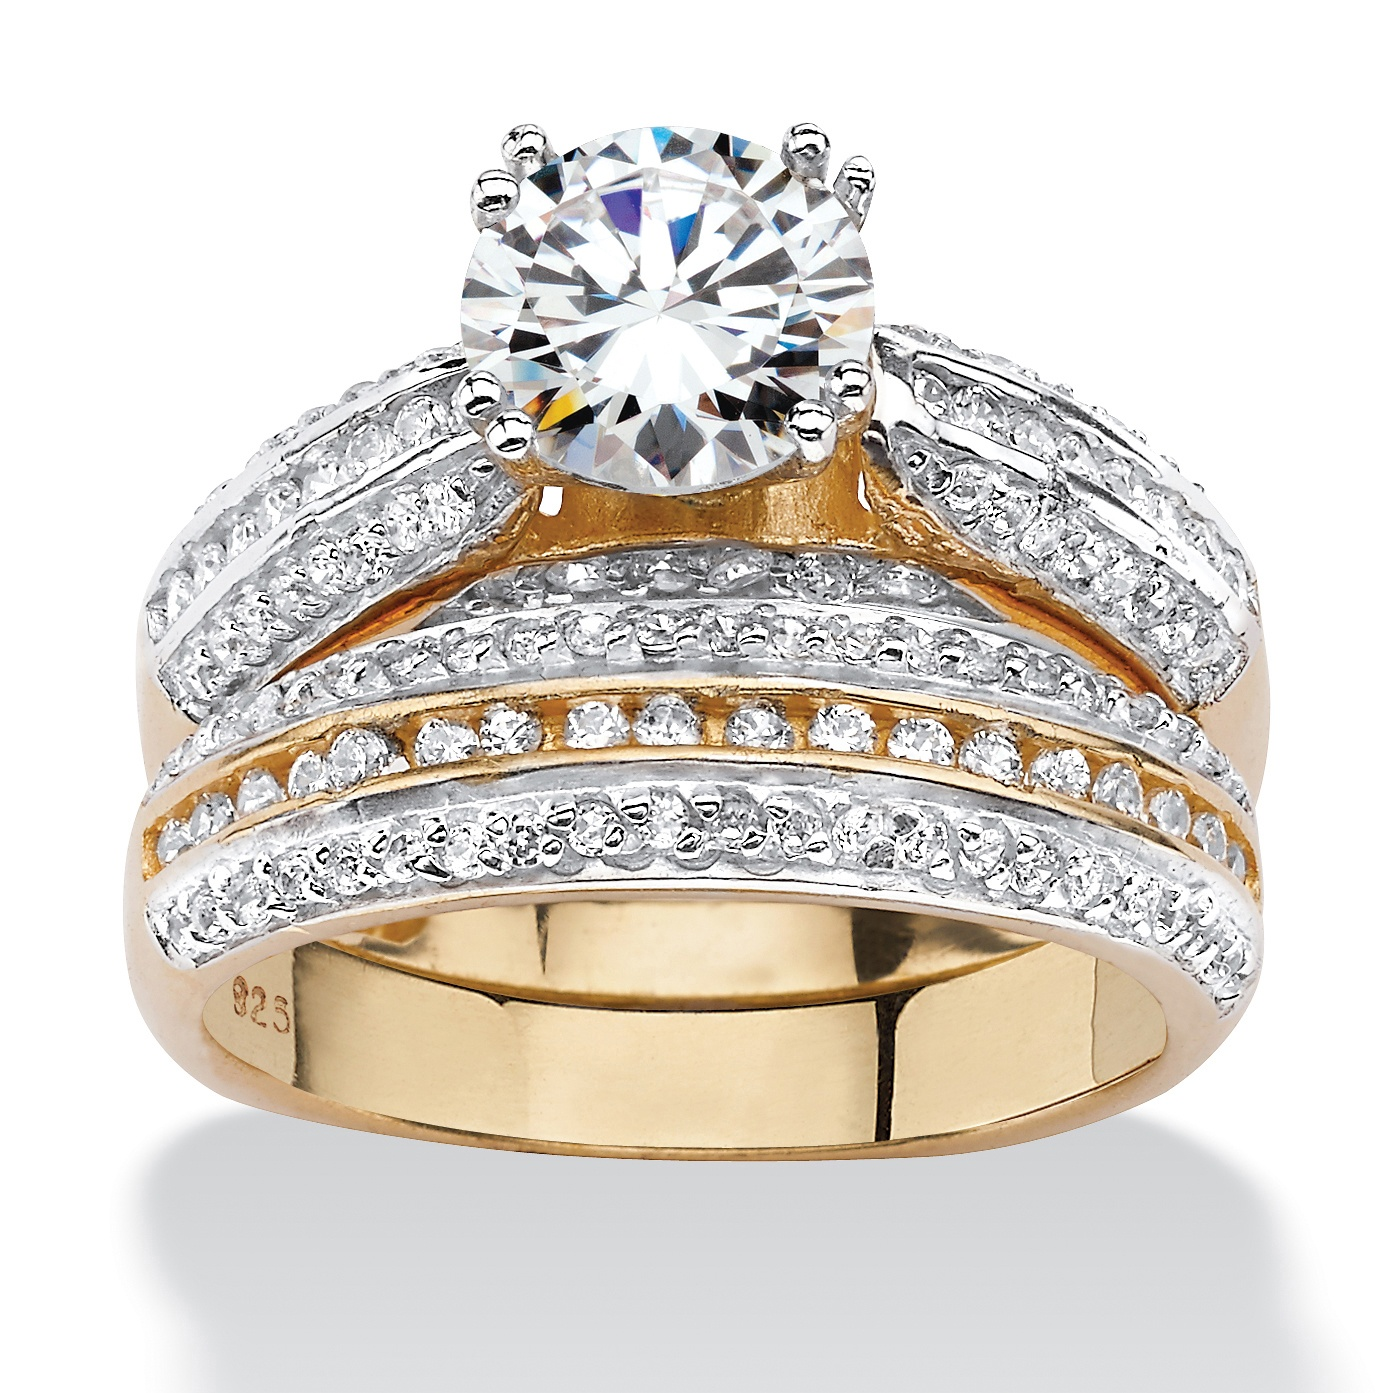 255 TCW Cubic Zirconia Two Piece Bridal Set In18k Gold